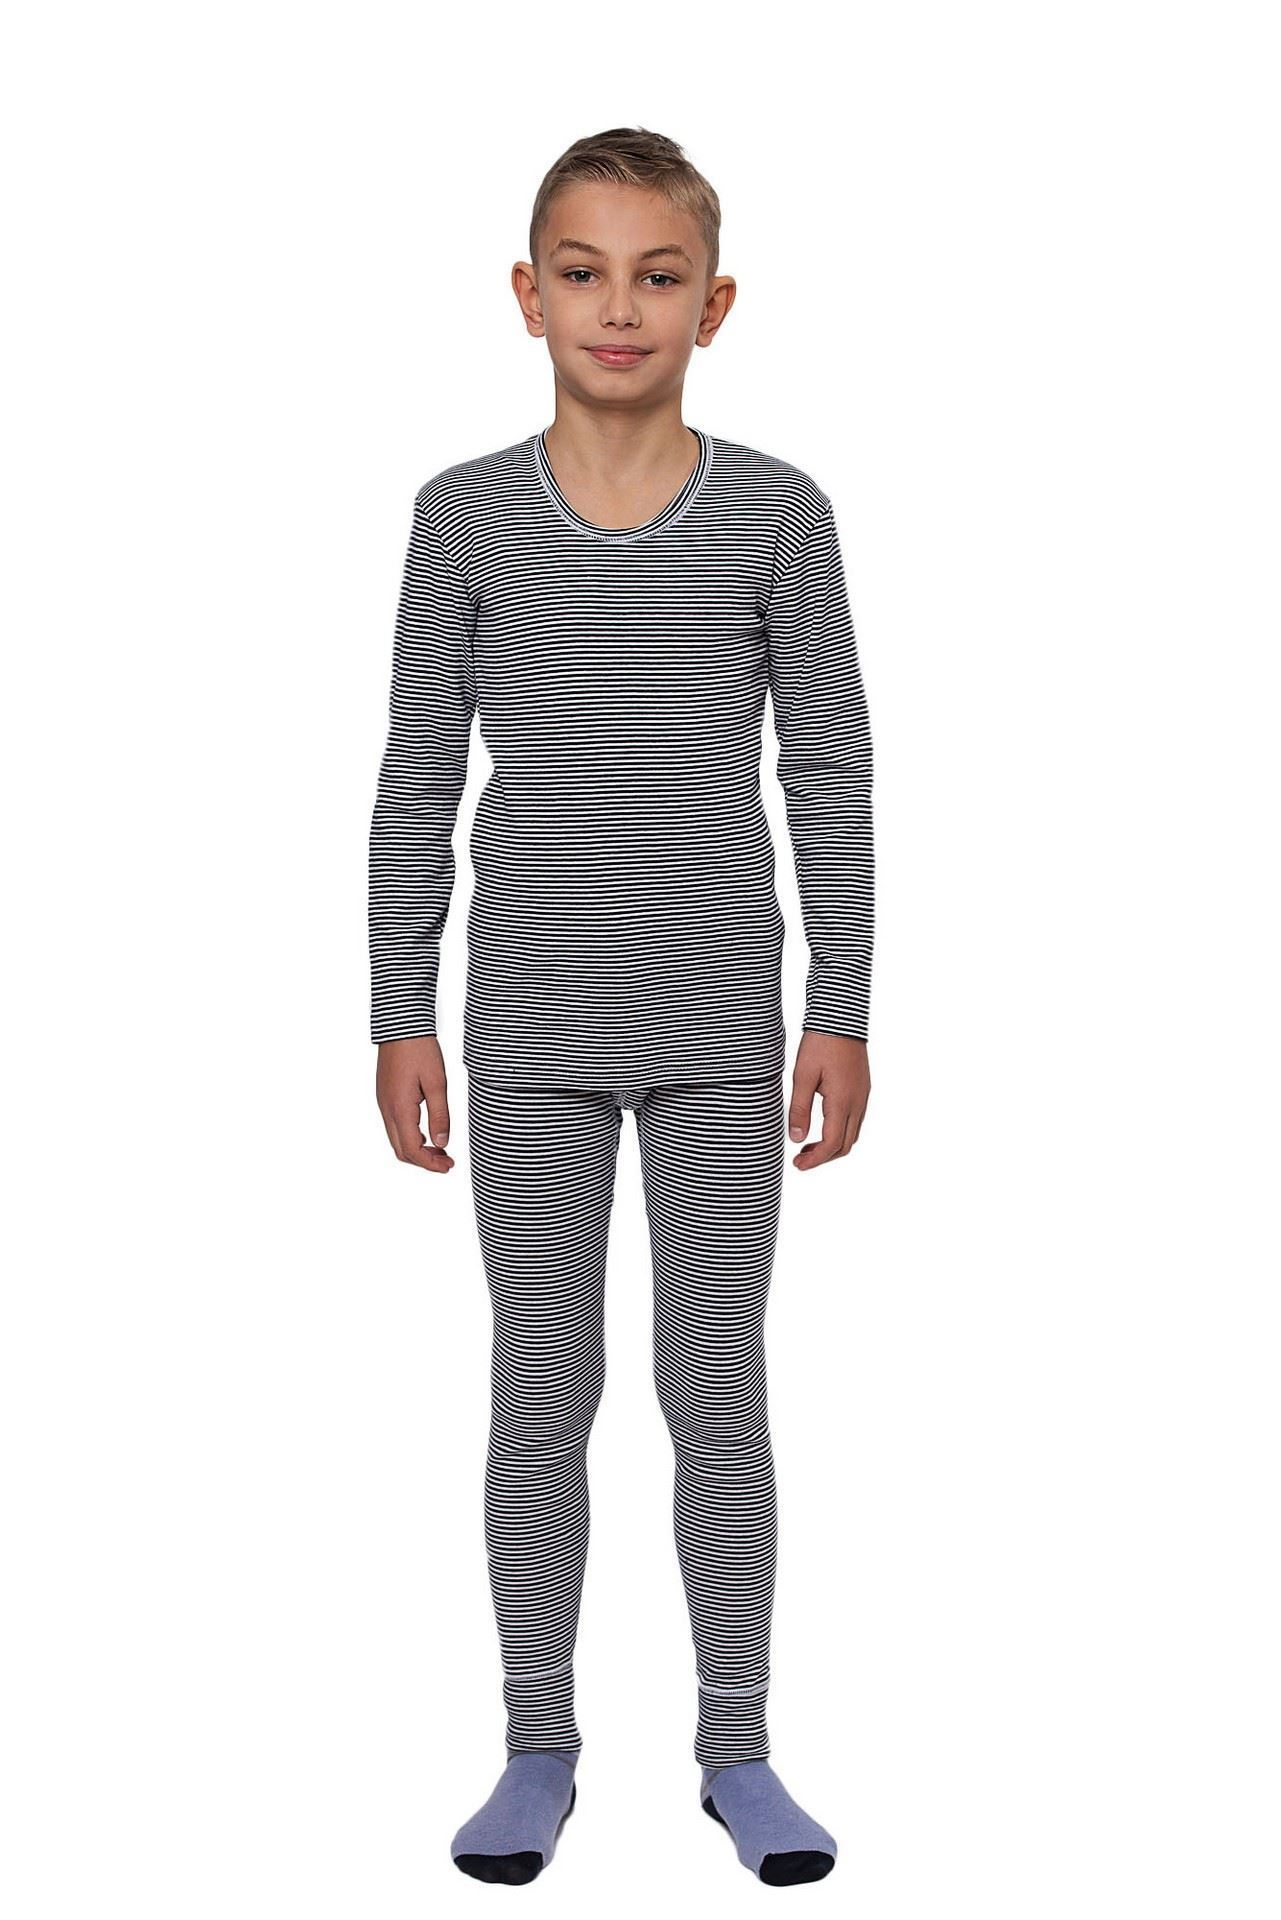 Picture of Boy's long sleeves shirt - Outlet